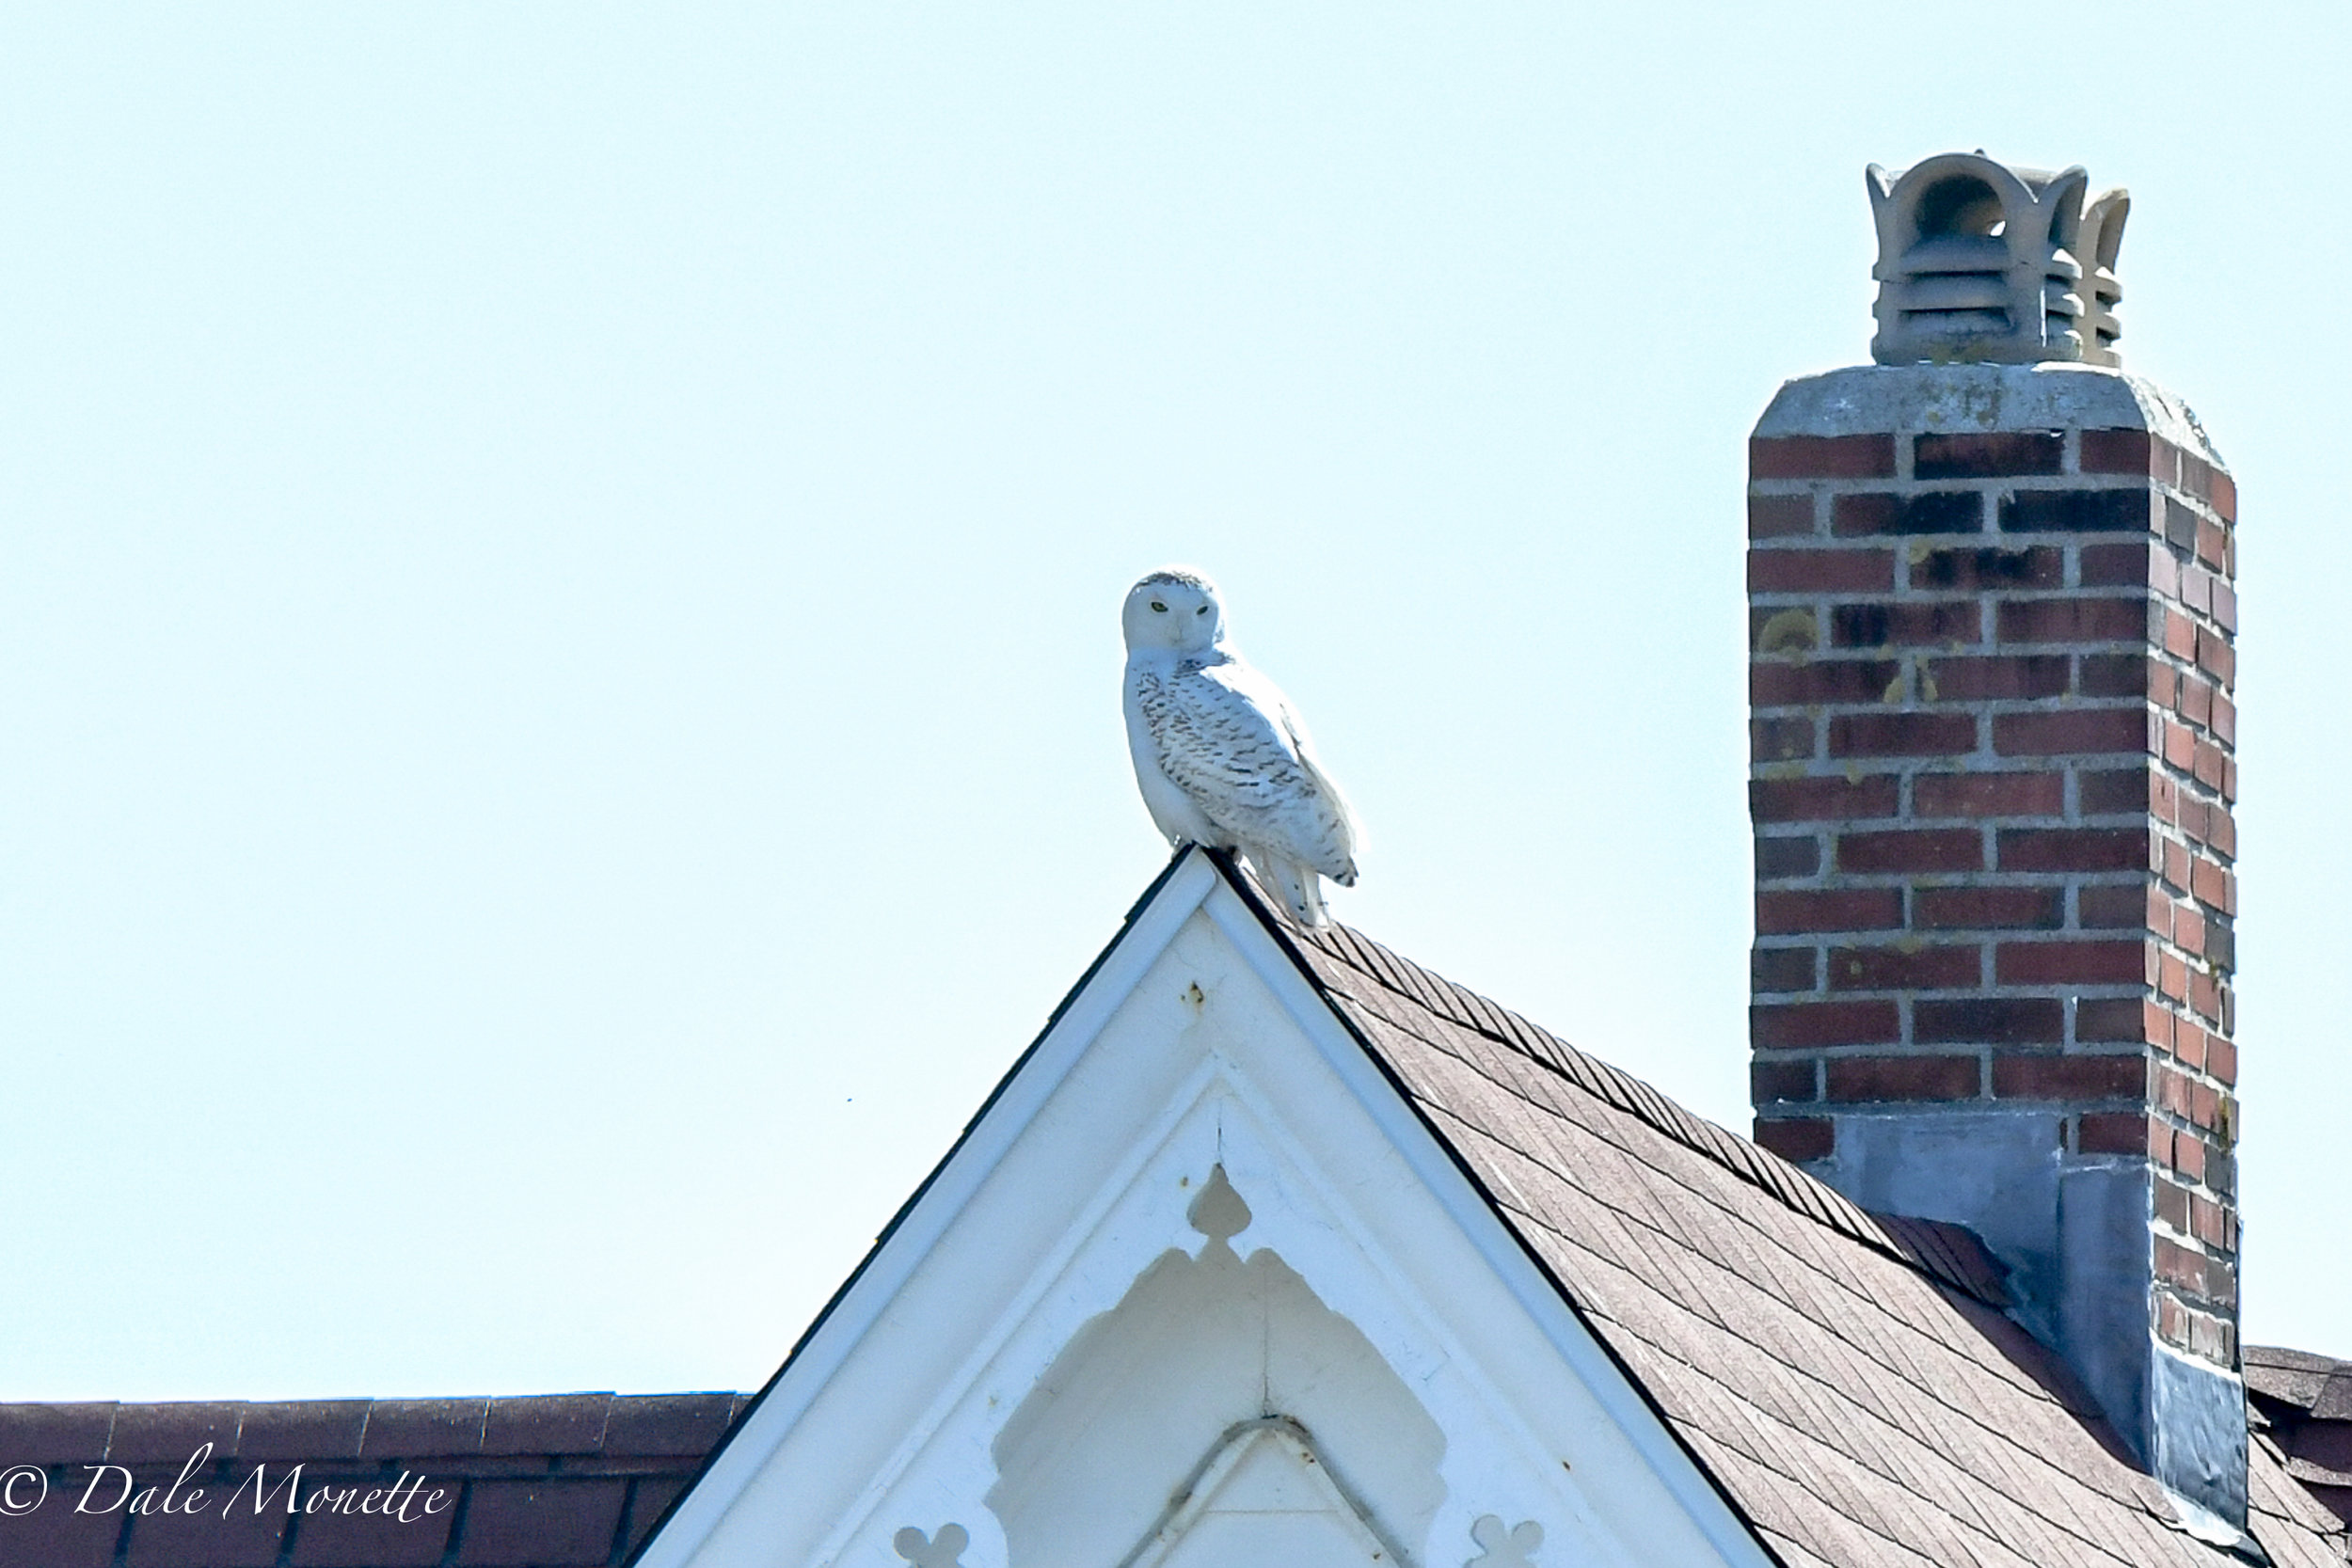 This is the house connected to Nubble Lighthouse in York Maine. We visited it last Monday. While we were there a snowy owl landed on top of the roof point ! Quite the surprise….. 4/23/18